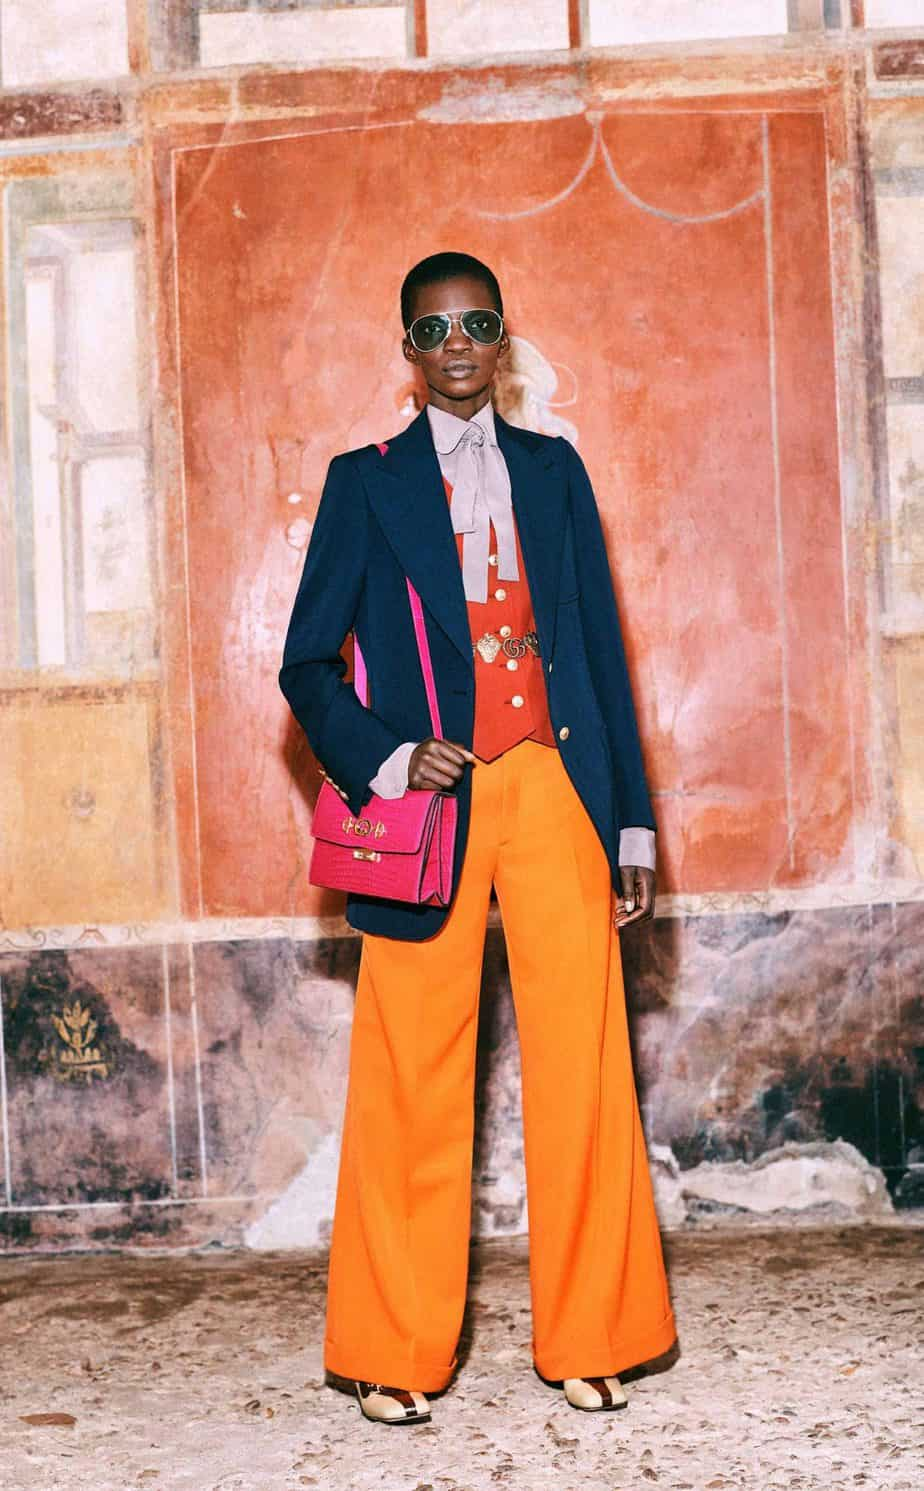 GUCCI, FALL 2019. WOMEN'S FASHION, Photographer Harmony Korine, Art Director, Christopher Simmonds - 21